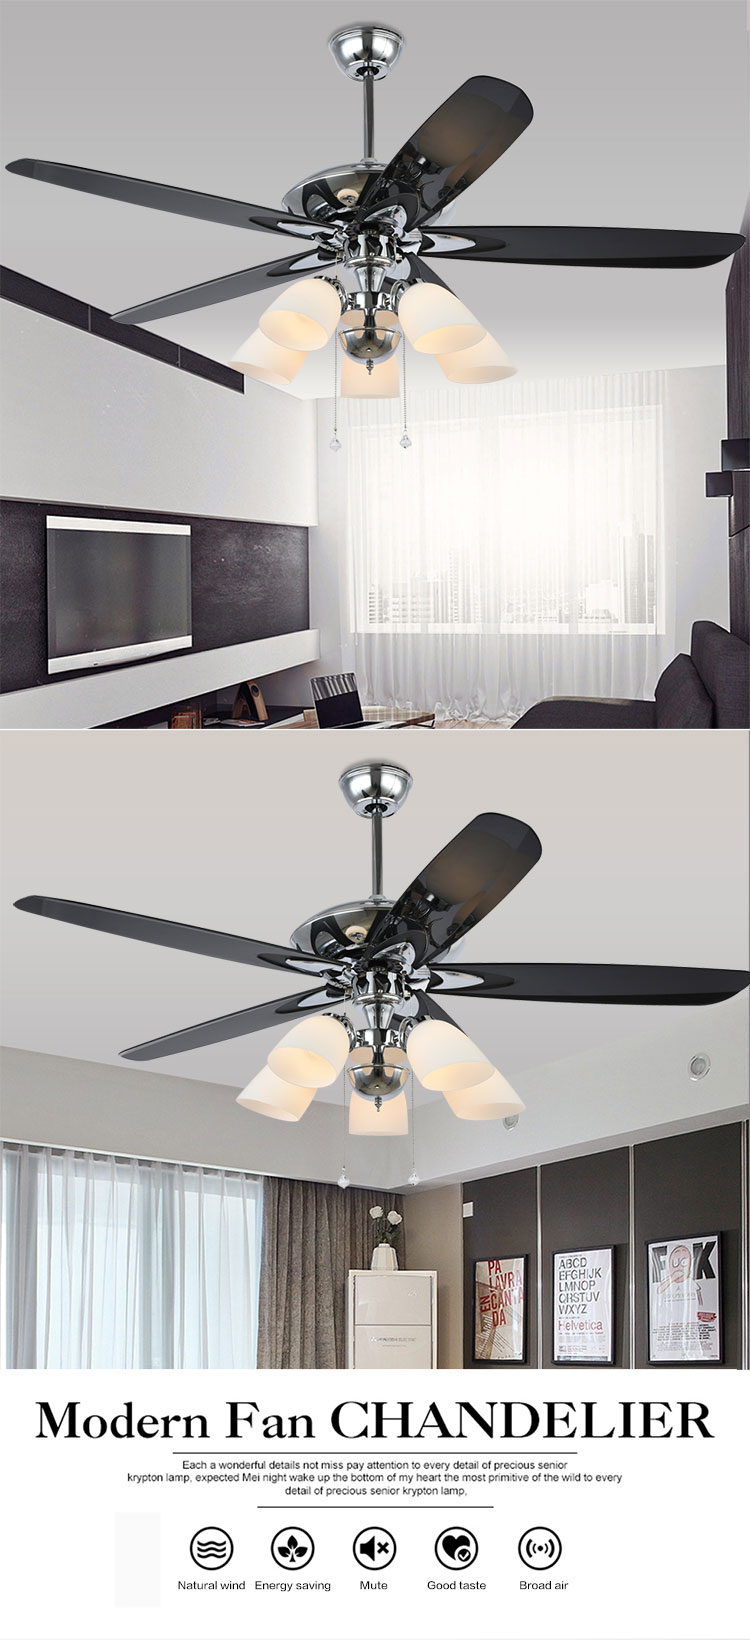 Low price Modern 5 blades 220v ceiling fan Pendant Lights energy saving